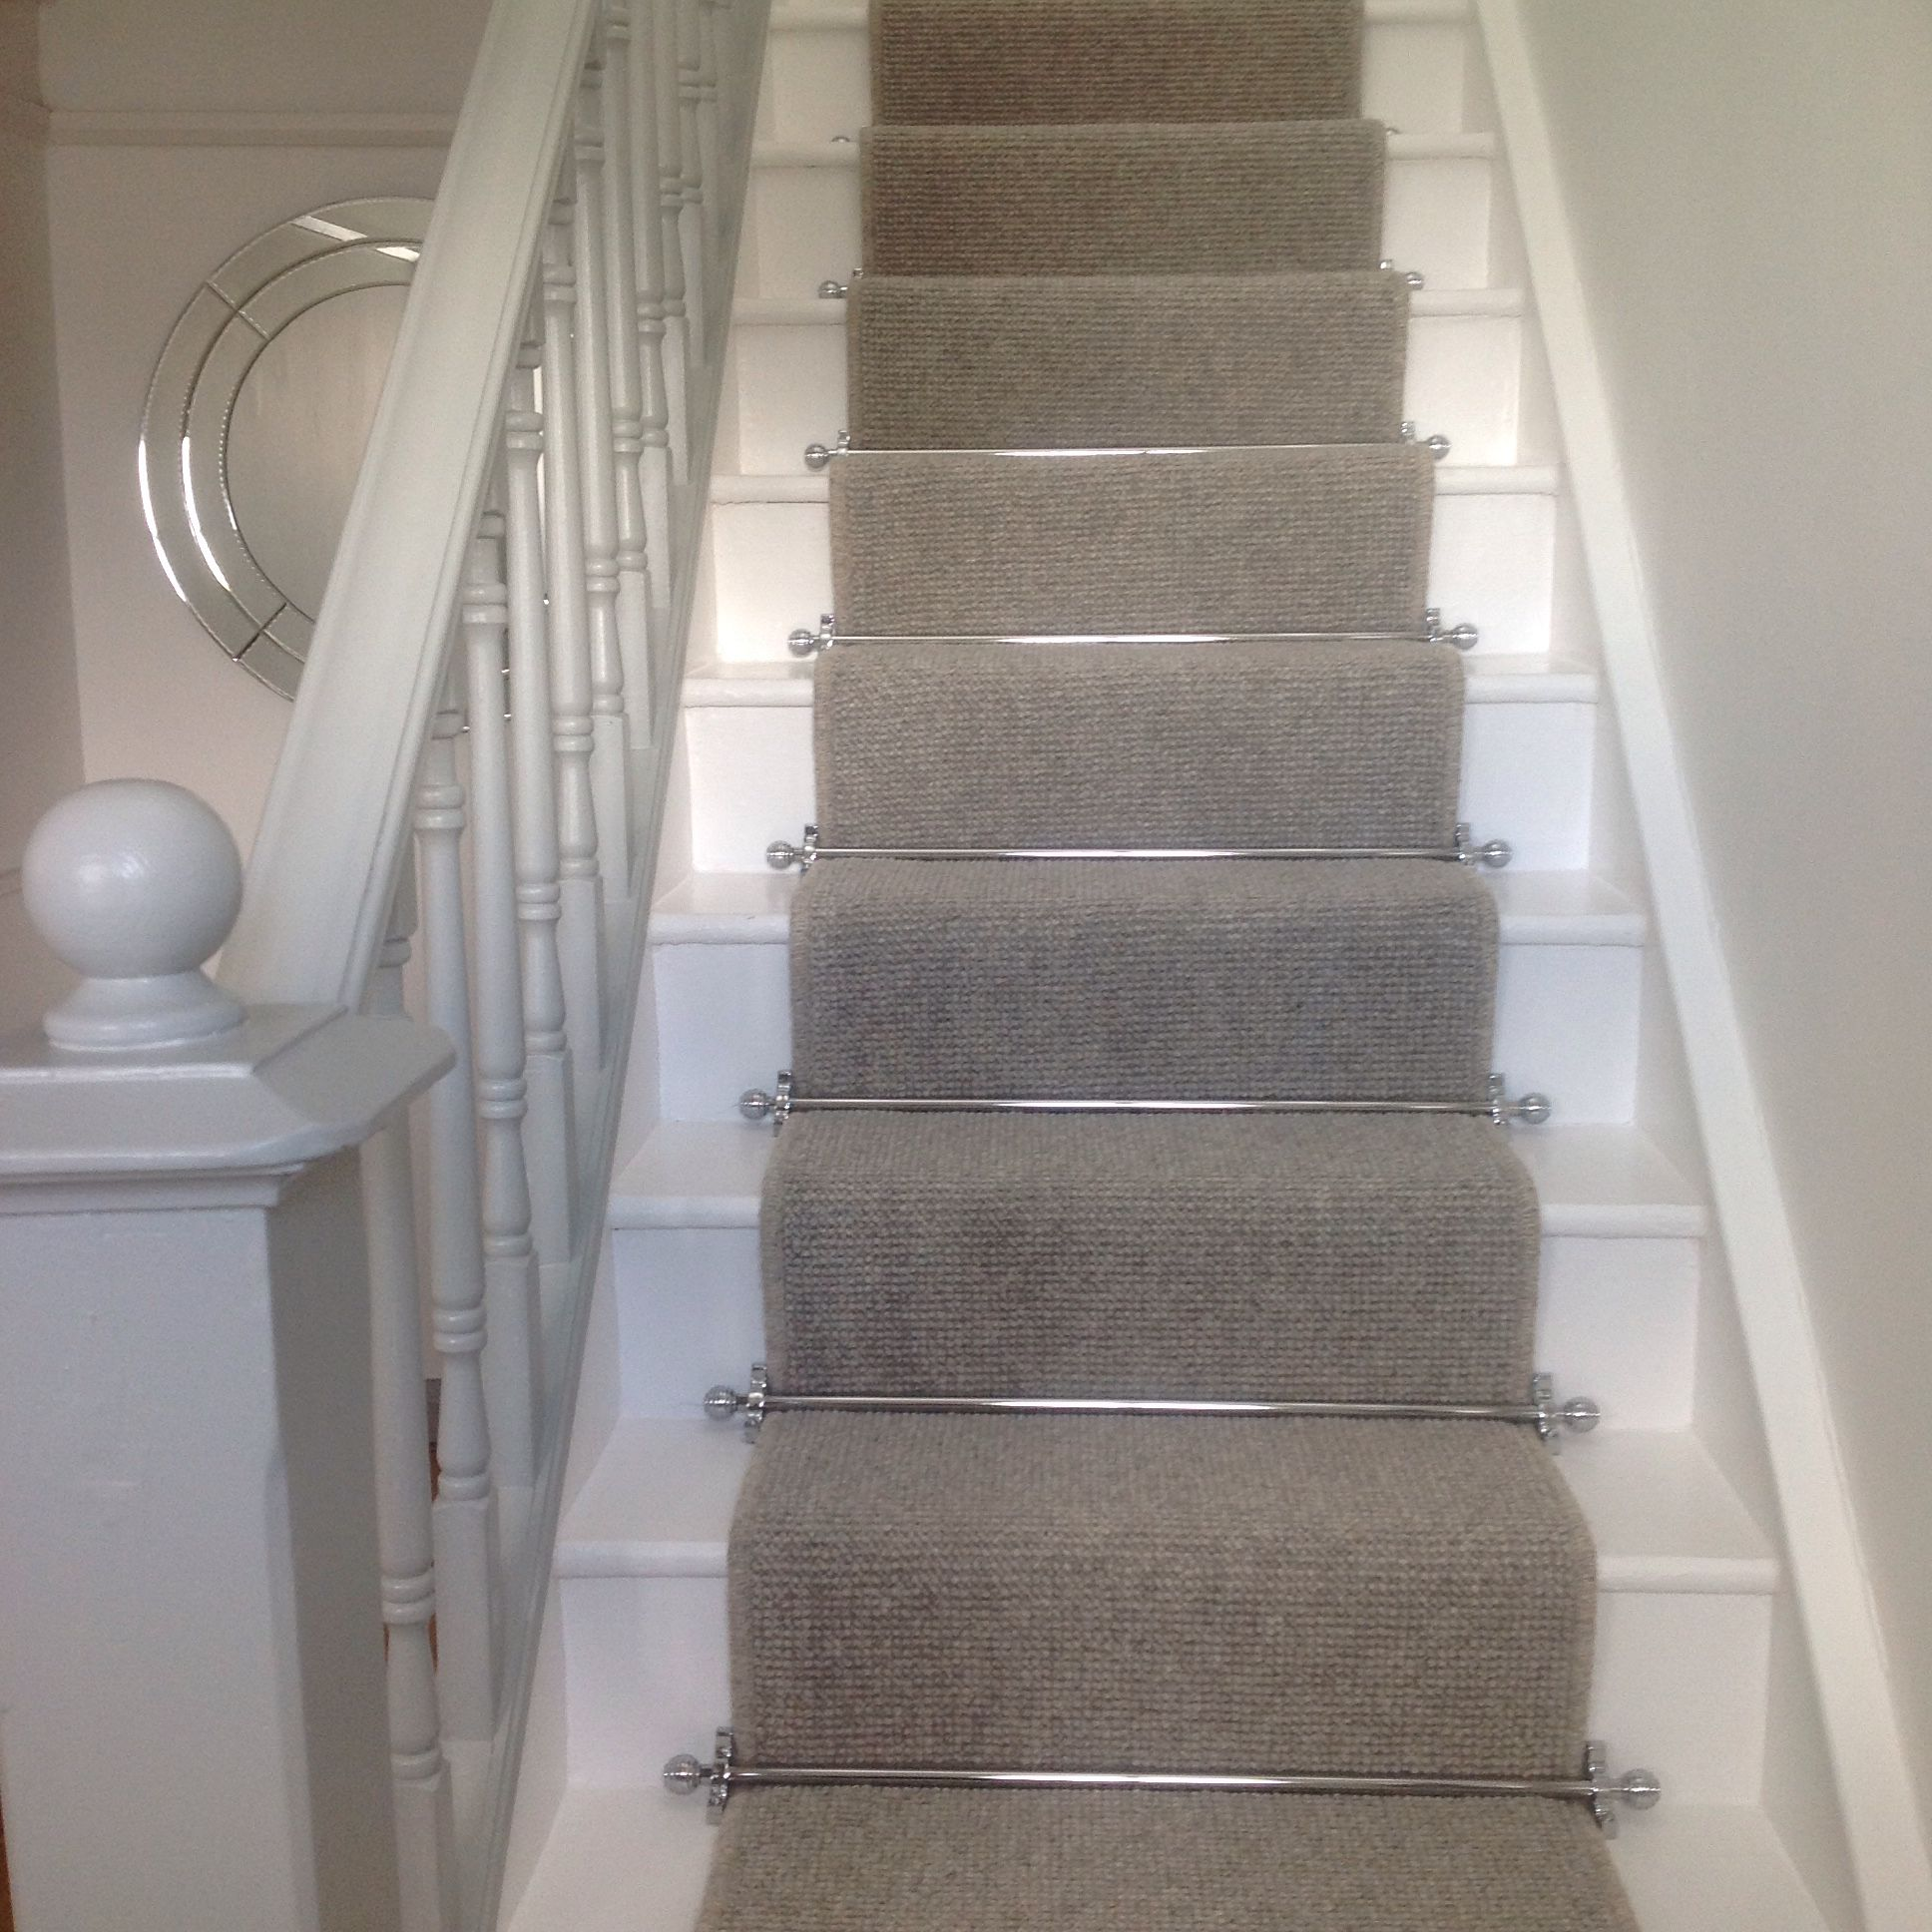 Runner On Stairs With Grey Carpet With Chrome Bars Hall